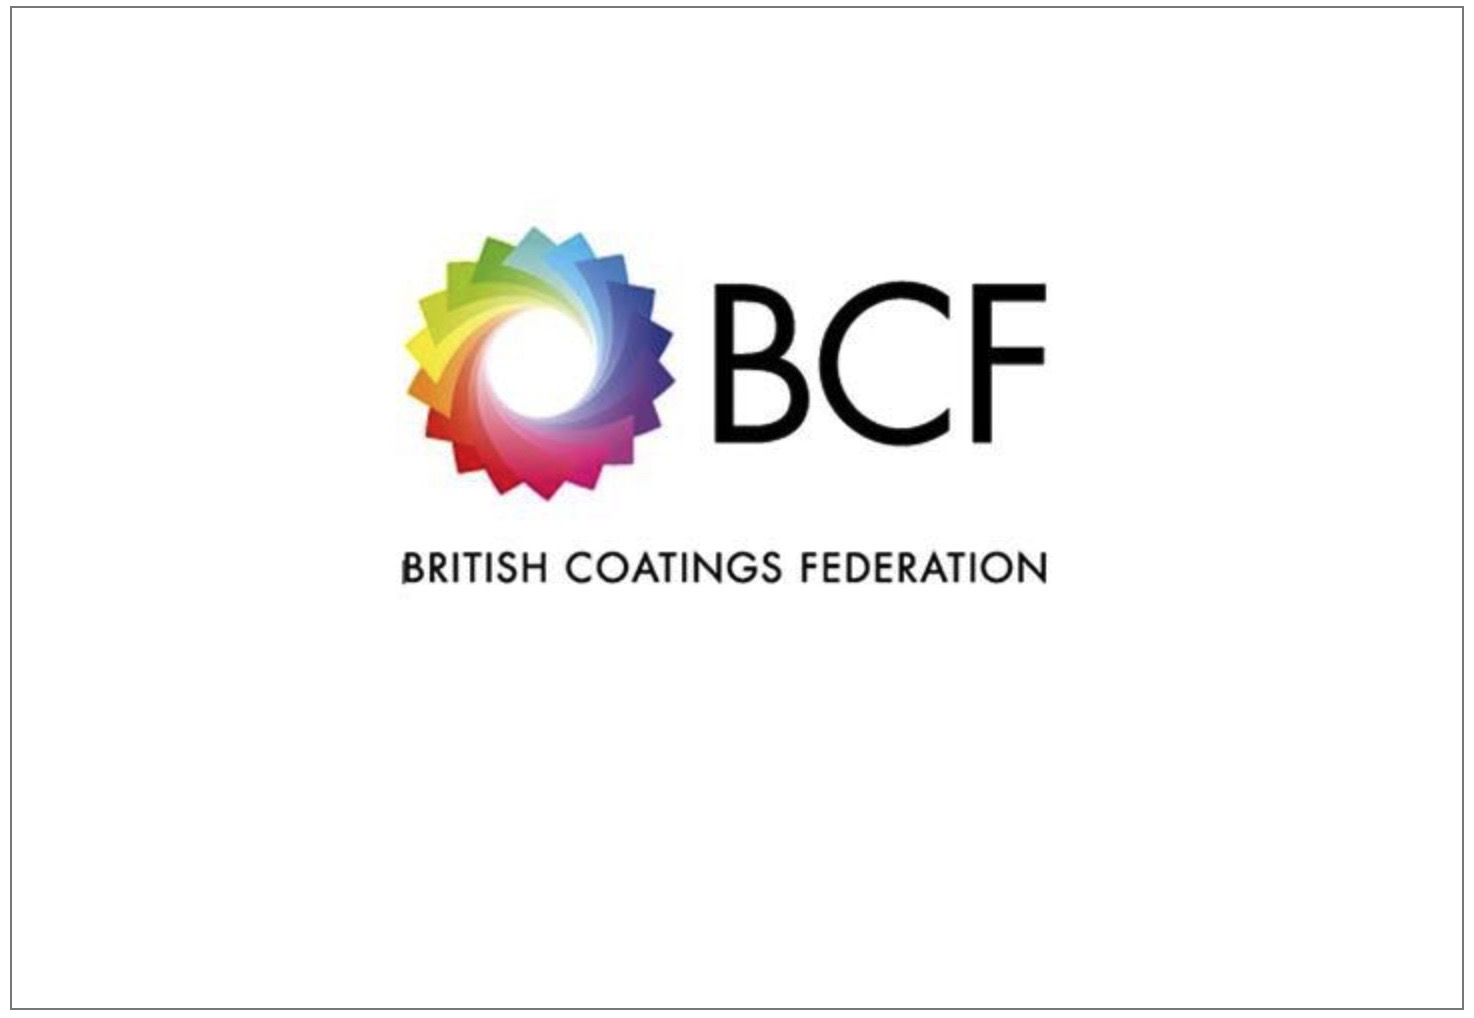 Coatings Industry warns of serious consequences of a 'No Deal' Brexit